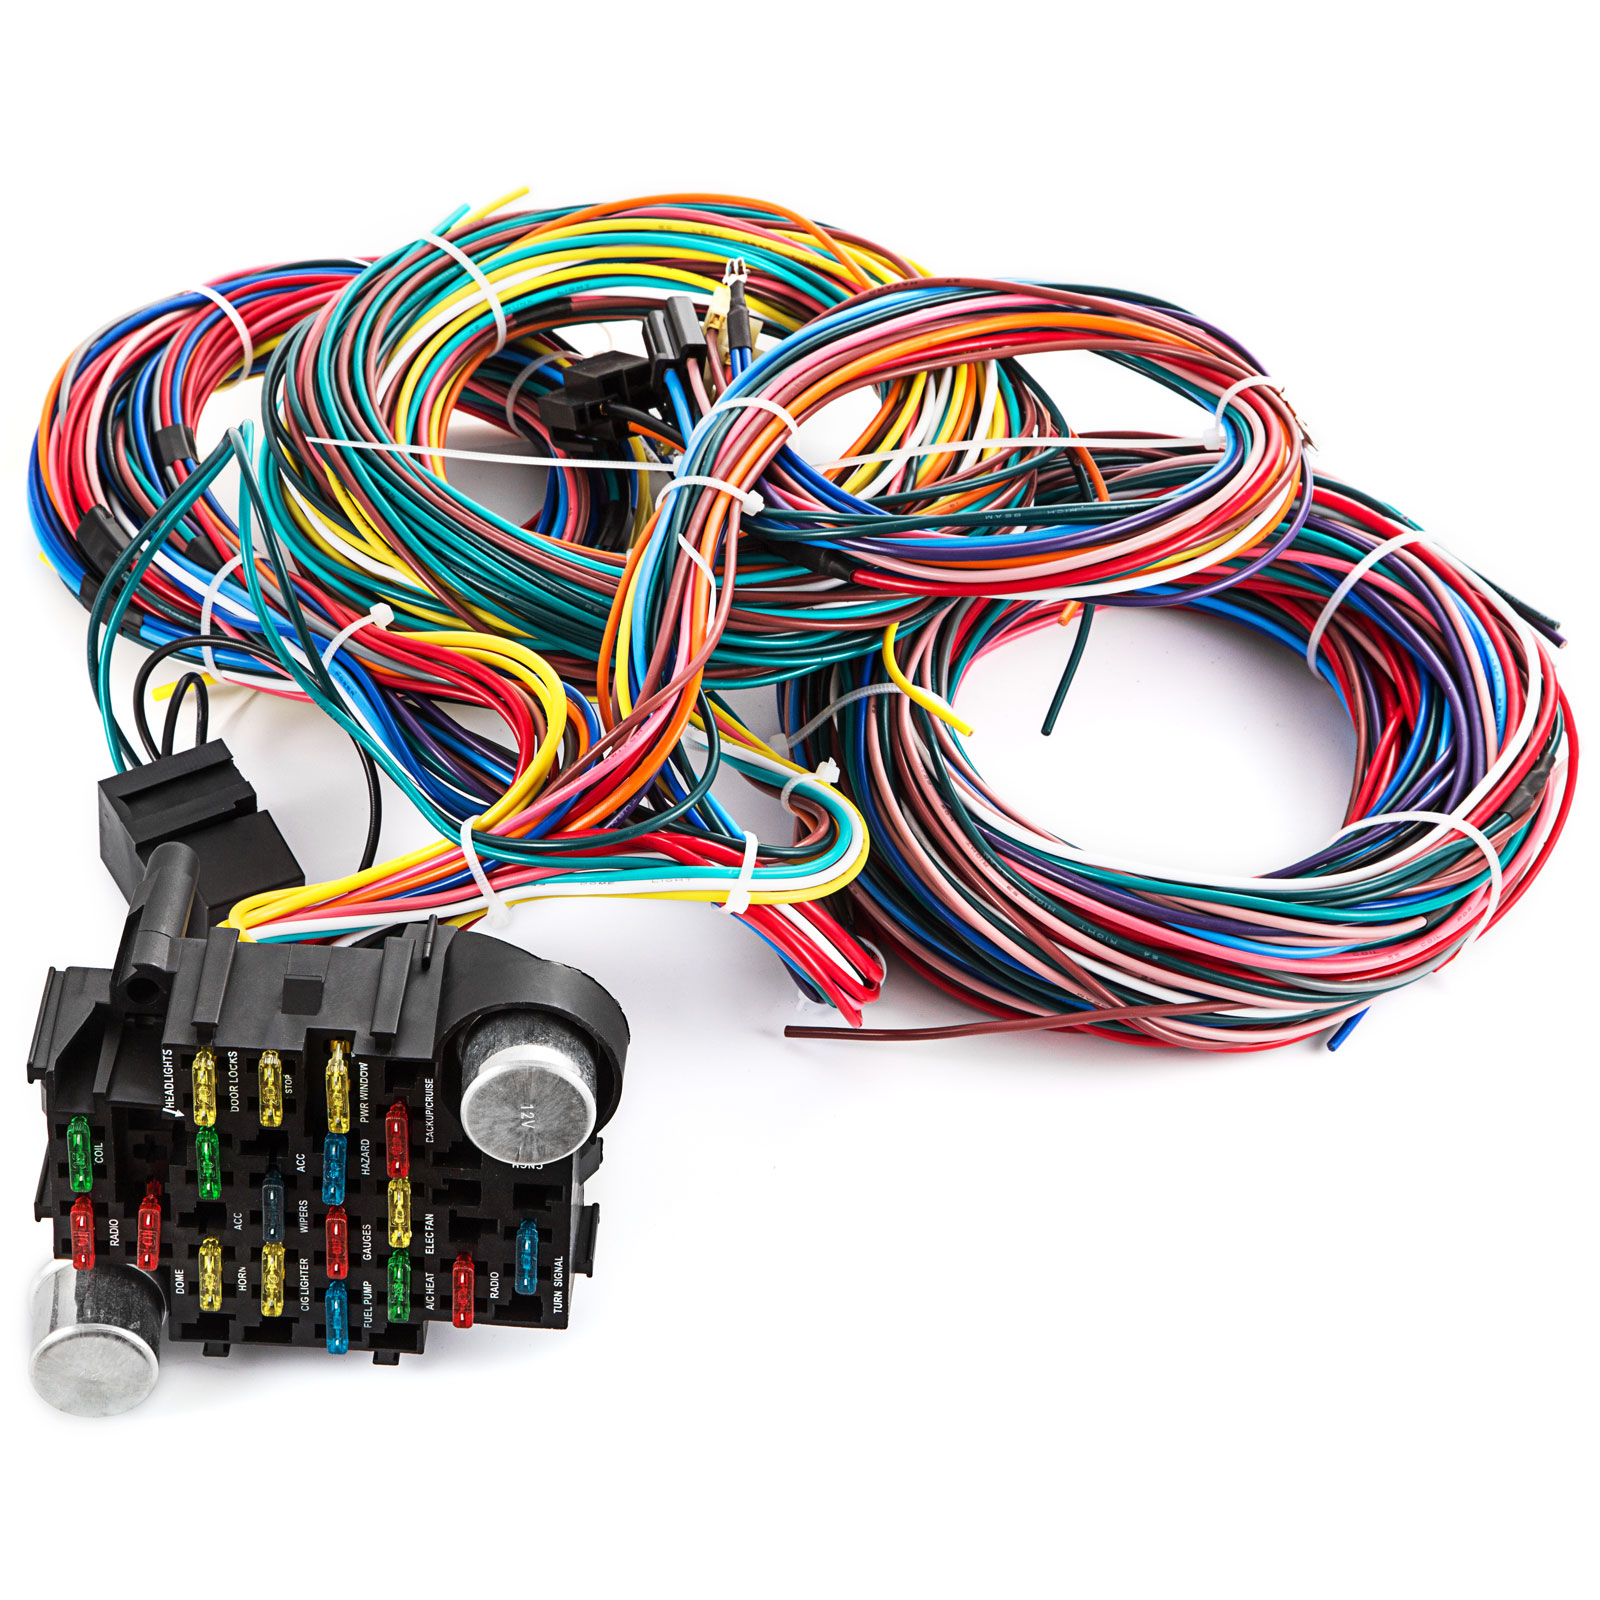 Wiring Harness Extra Wires Diagrams Schematics Universal Connector Plugs 21 Circuit Ez Chevy Mopar Ford Hotrods X Rh Ebay Com 4 Plug